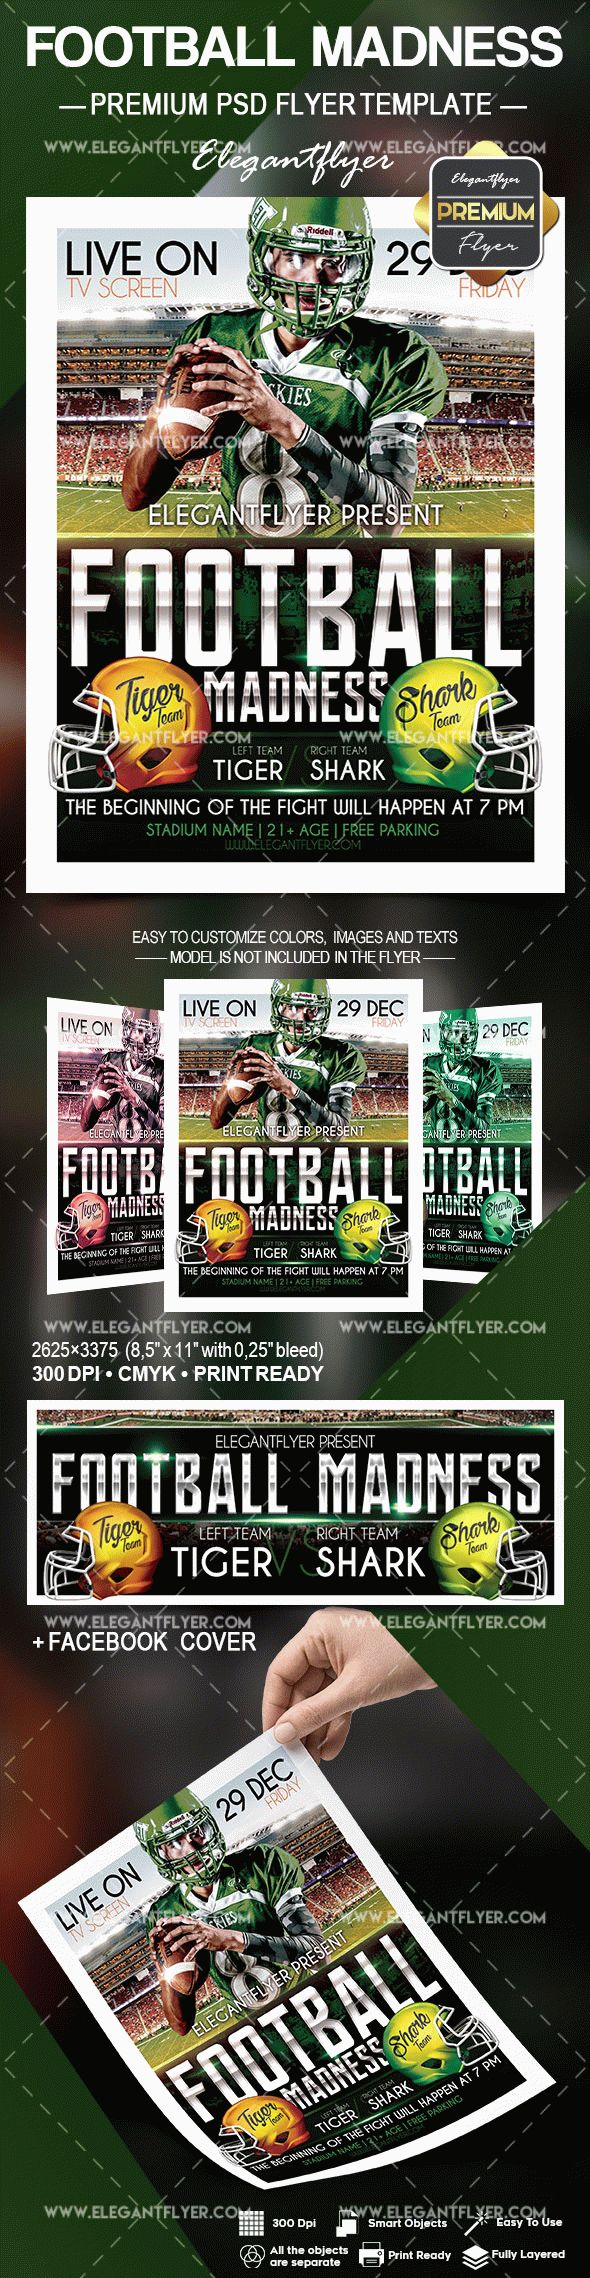 Flyer Template Football Madness